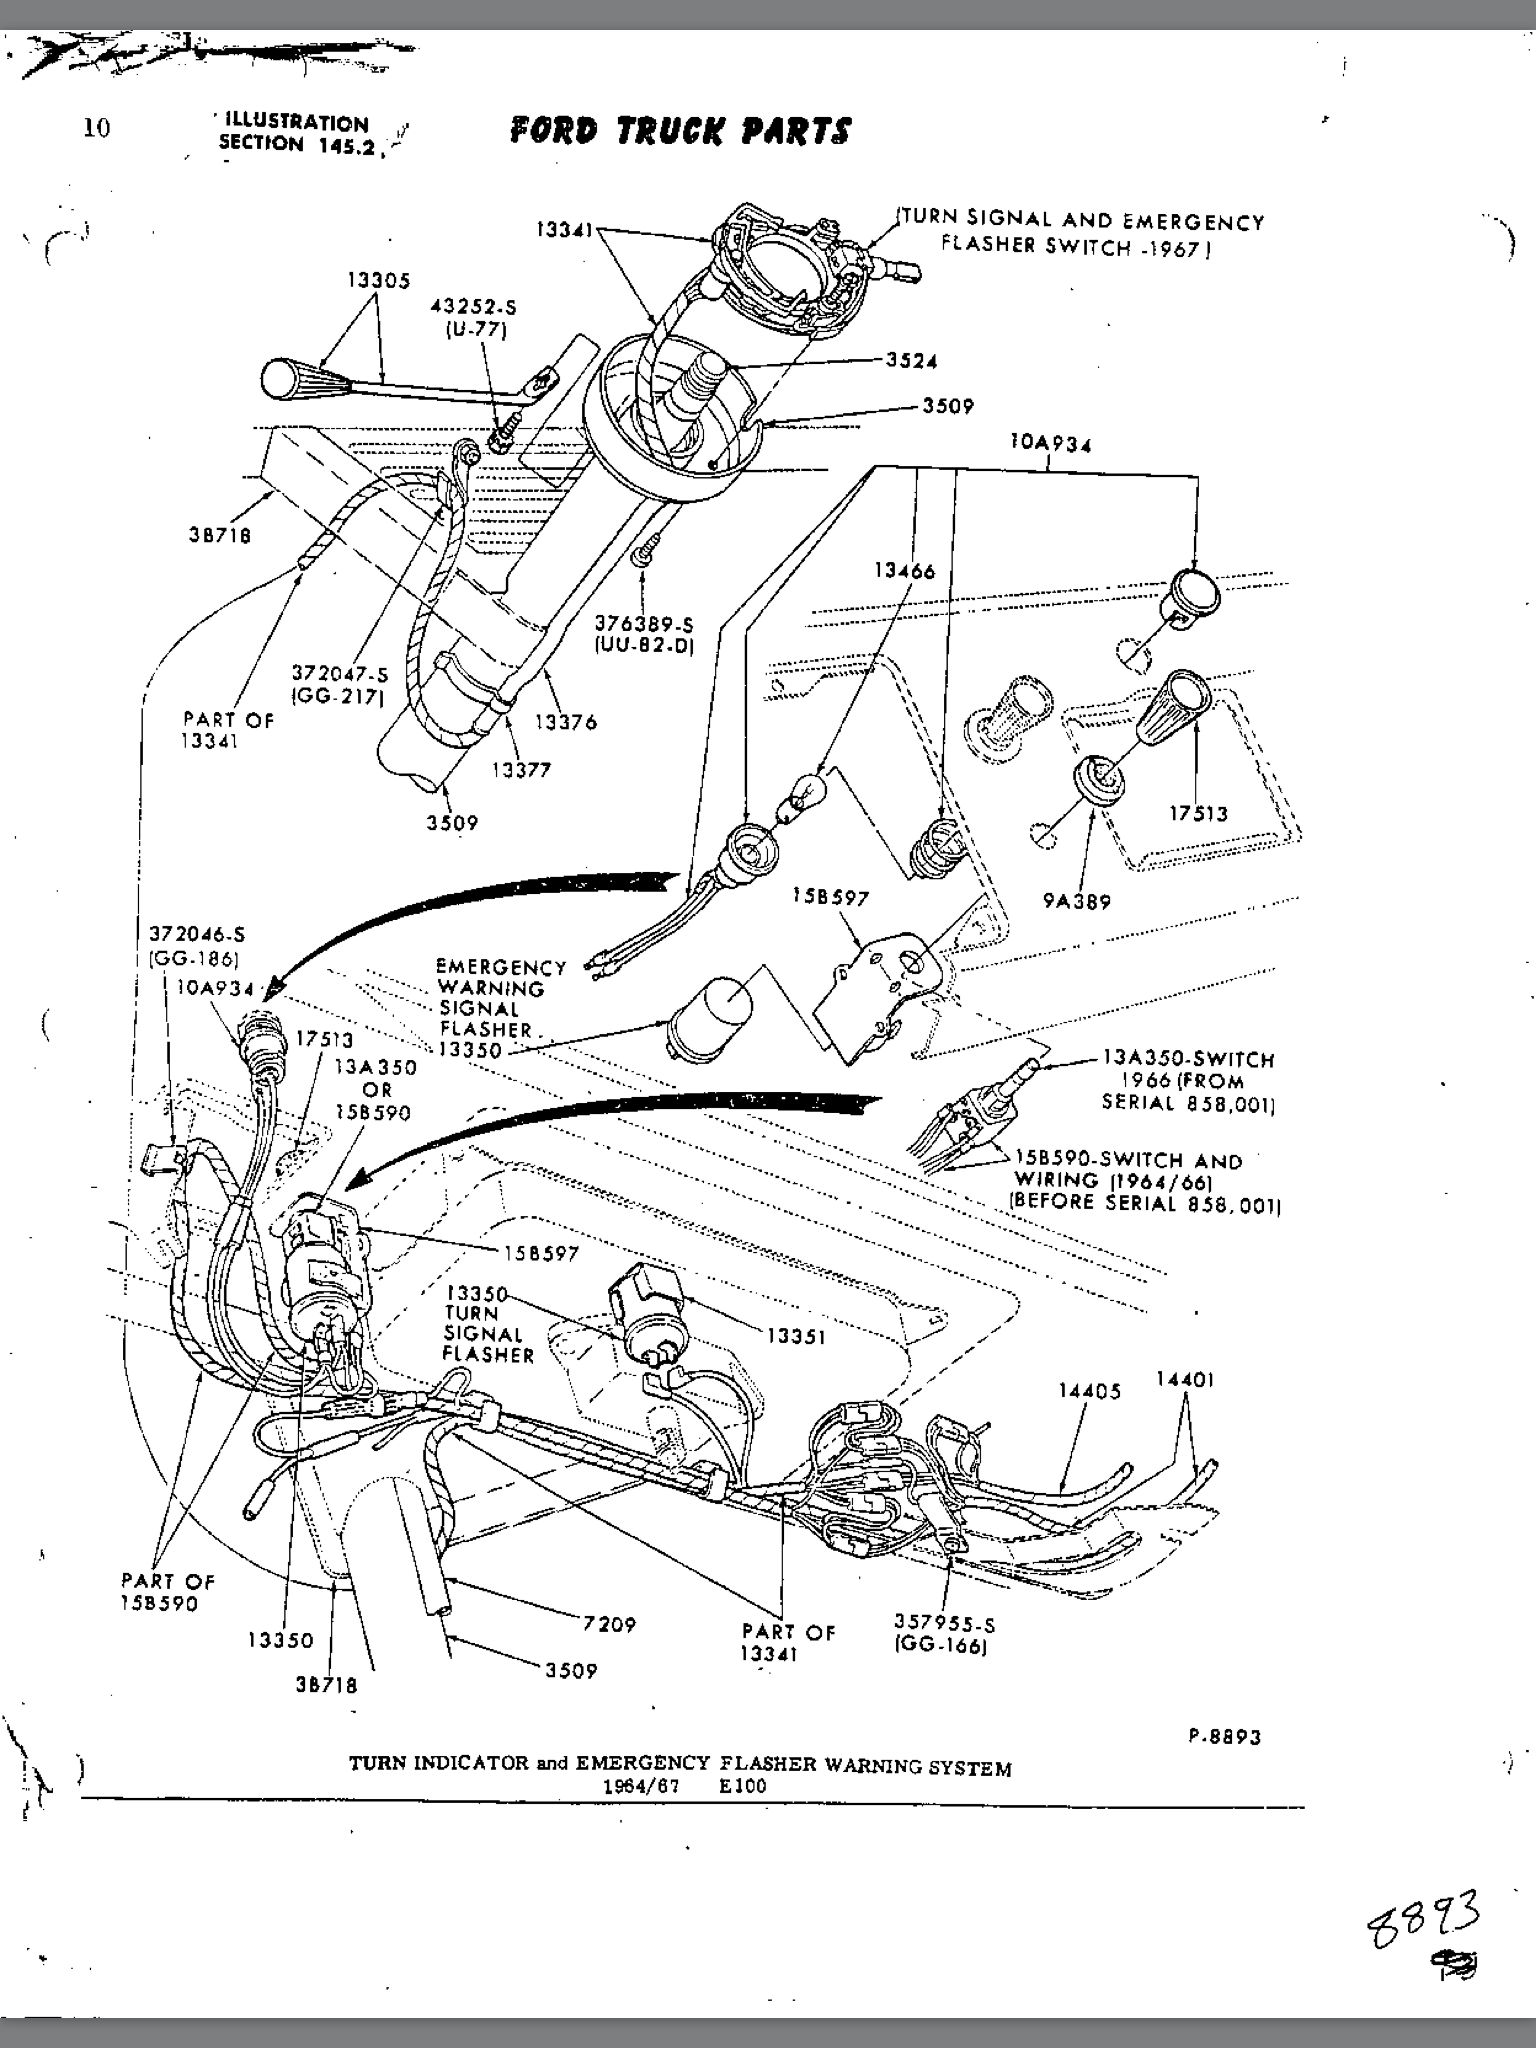 exploded view of steering wheel econoline manuals and diagrams ford econoline steering column diagram [ 1536 x 2048 Pixel ]